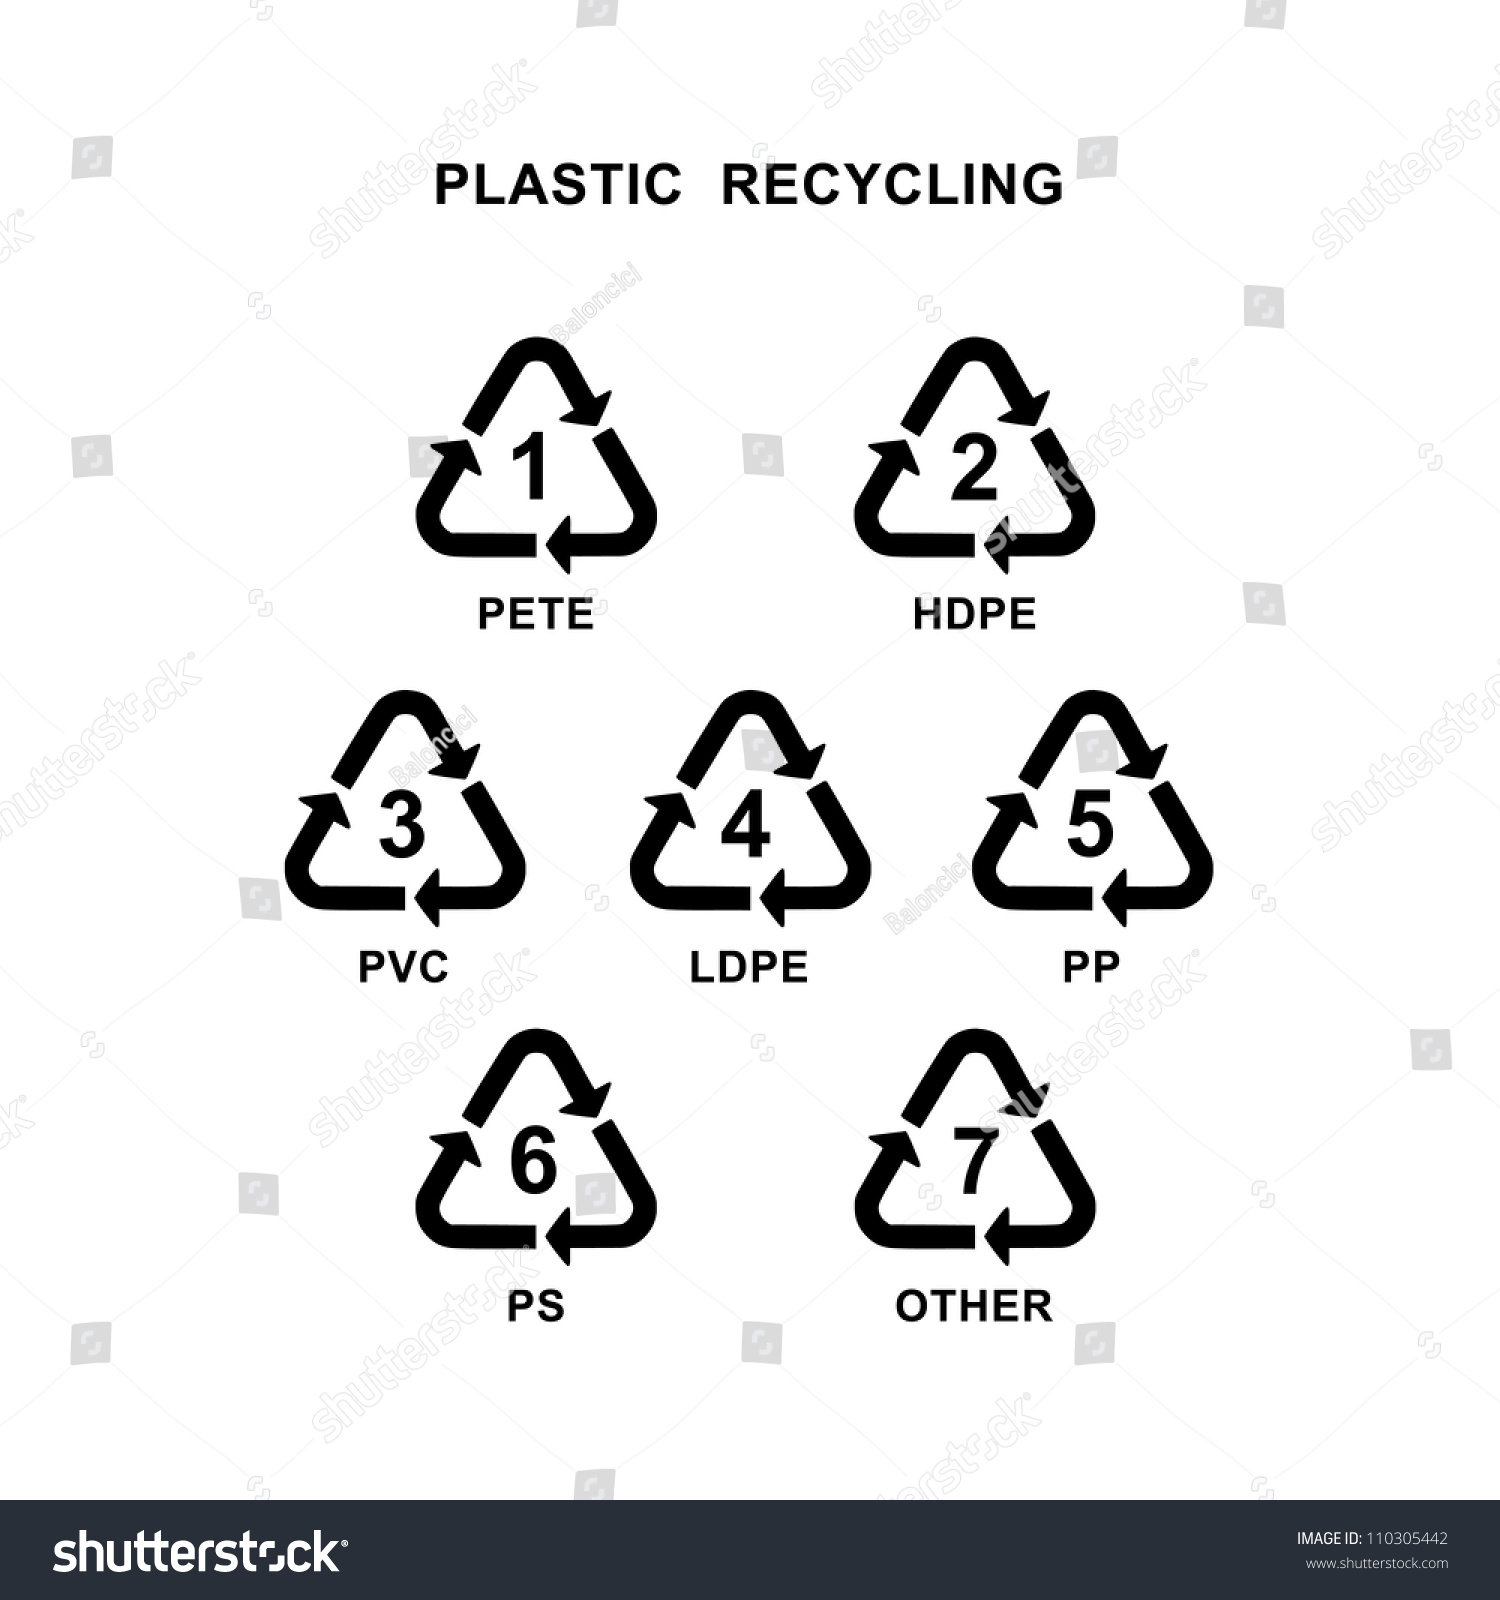 Recycling symbol different types plastic material stock photo recycling symbol for different types of plastic material biocorpaavc Choice Image